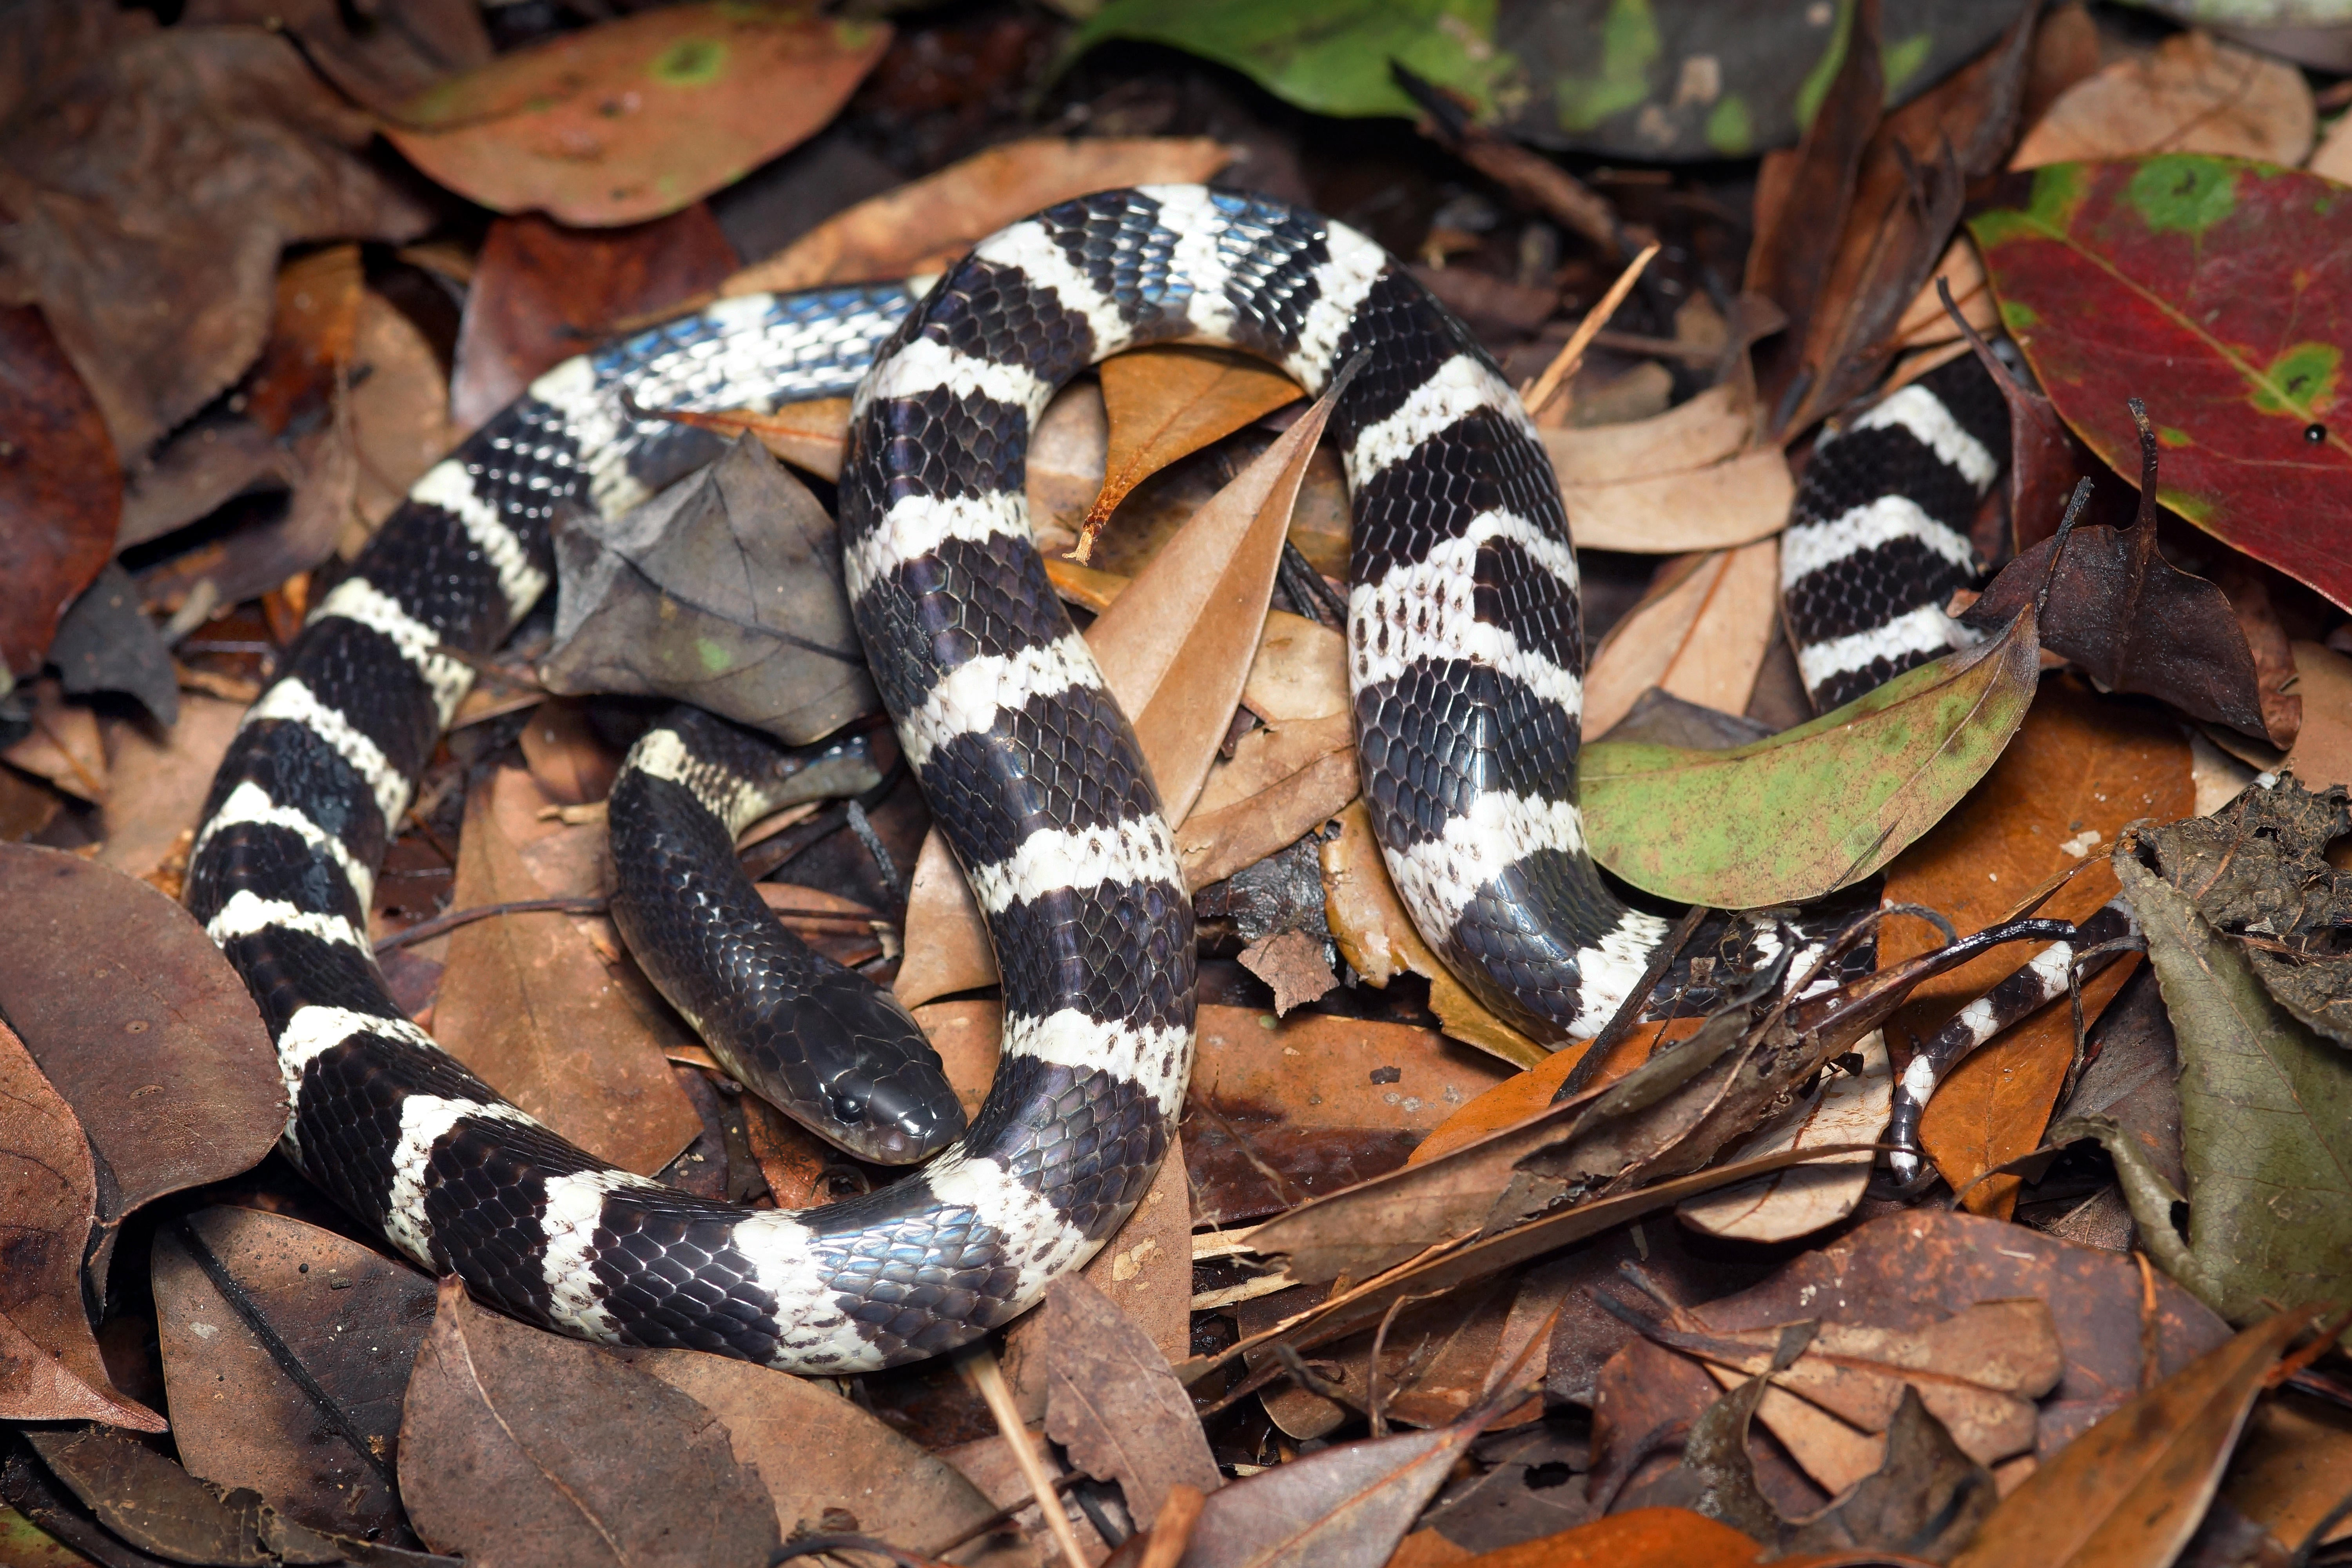 Some Scientists Skeptical about Snakes Spreading New Virus in China